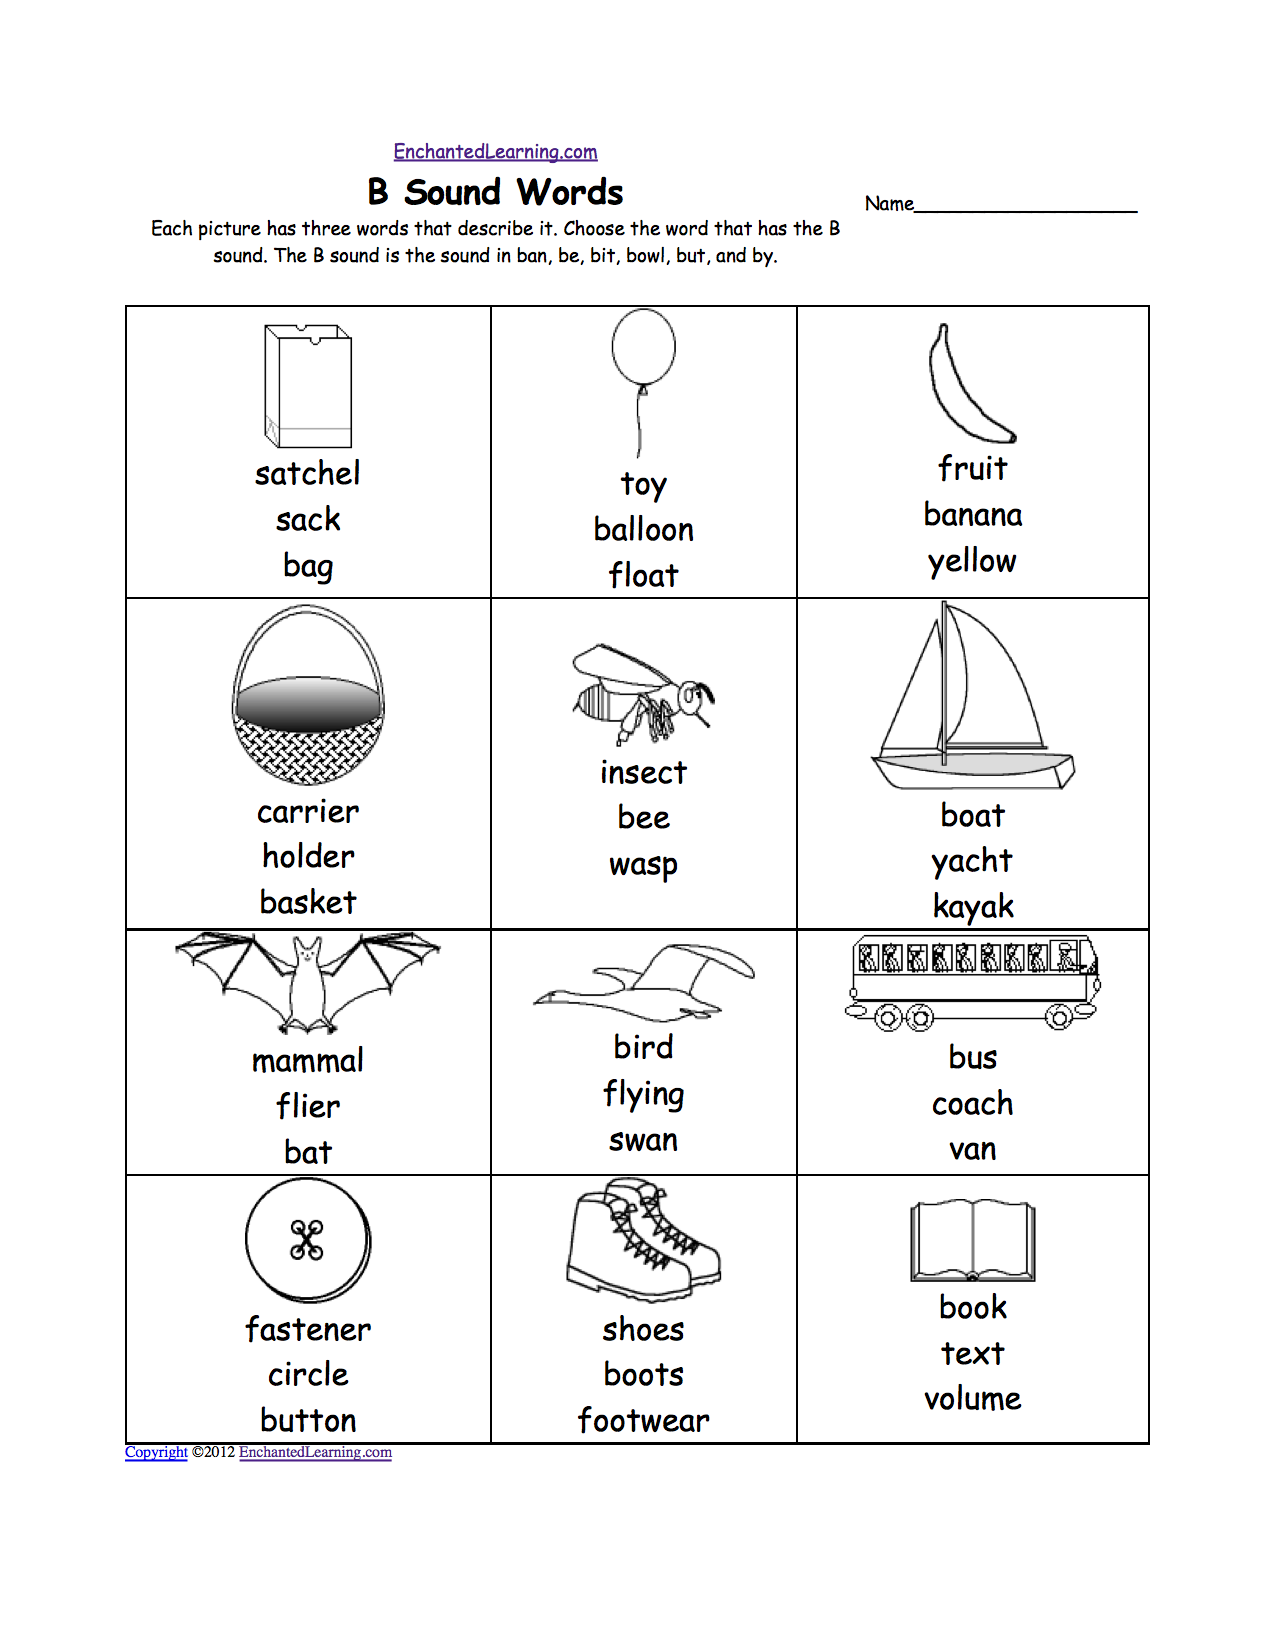 Aldiablosus  Terrific Phonics Worksheets Multiple Choice Worksheets To Print  With Interesting Quotbquot Sound Phonics Worksheet Multiple Choice Each Picture Has Three Words That Describe It Choose The Word That Has A Quotbquot Sound The Quotbquot Sound Is The Sound  With Enchanting Range Median Mode Mean Worksheets Also Nominative And Objective Pronouns Worksheet In Addition Free Health Worksheets For Middle School And Flip Slide Turn Worksheet As Well As Fun Division Worksheets Th Grade Additionally Worksheet On Compound Words From Enchantedlearningcom With Aldiablosus  Interesting Phonics Worksheets Multiple Choice Worksheets To Print  With Enchanting Quotbquot Sound Phonics Worksheet Multiple Choice Each Picture Has Three Words That Describe It Choose The Word That Has A Quotbquot Sound The Quotbquot Sound Is The Sound  And Terrific Range Median Mode Mean Worksheets Also Nominative And Objective Pronouns Worksheet In Addition Free Health Worksheets For Middle School From Enchantedlearningcom